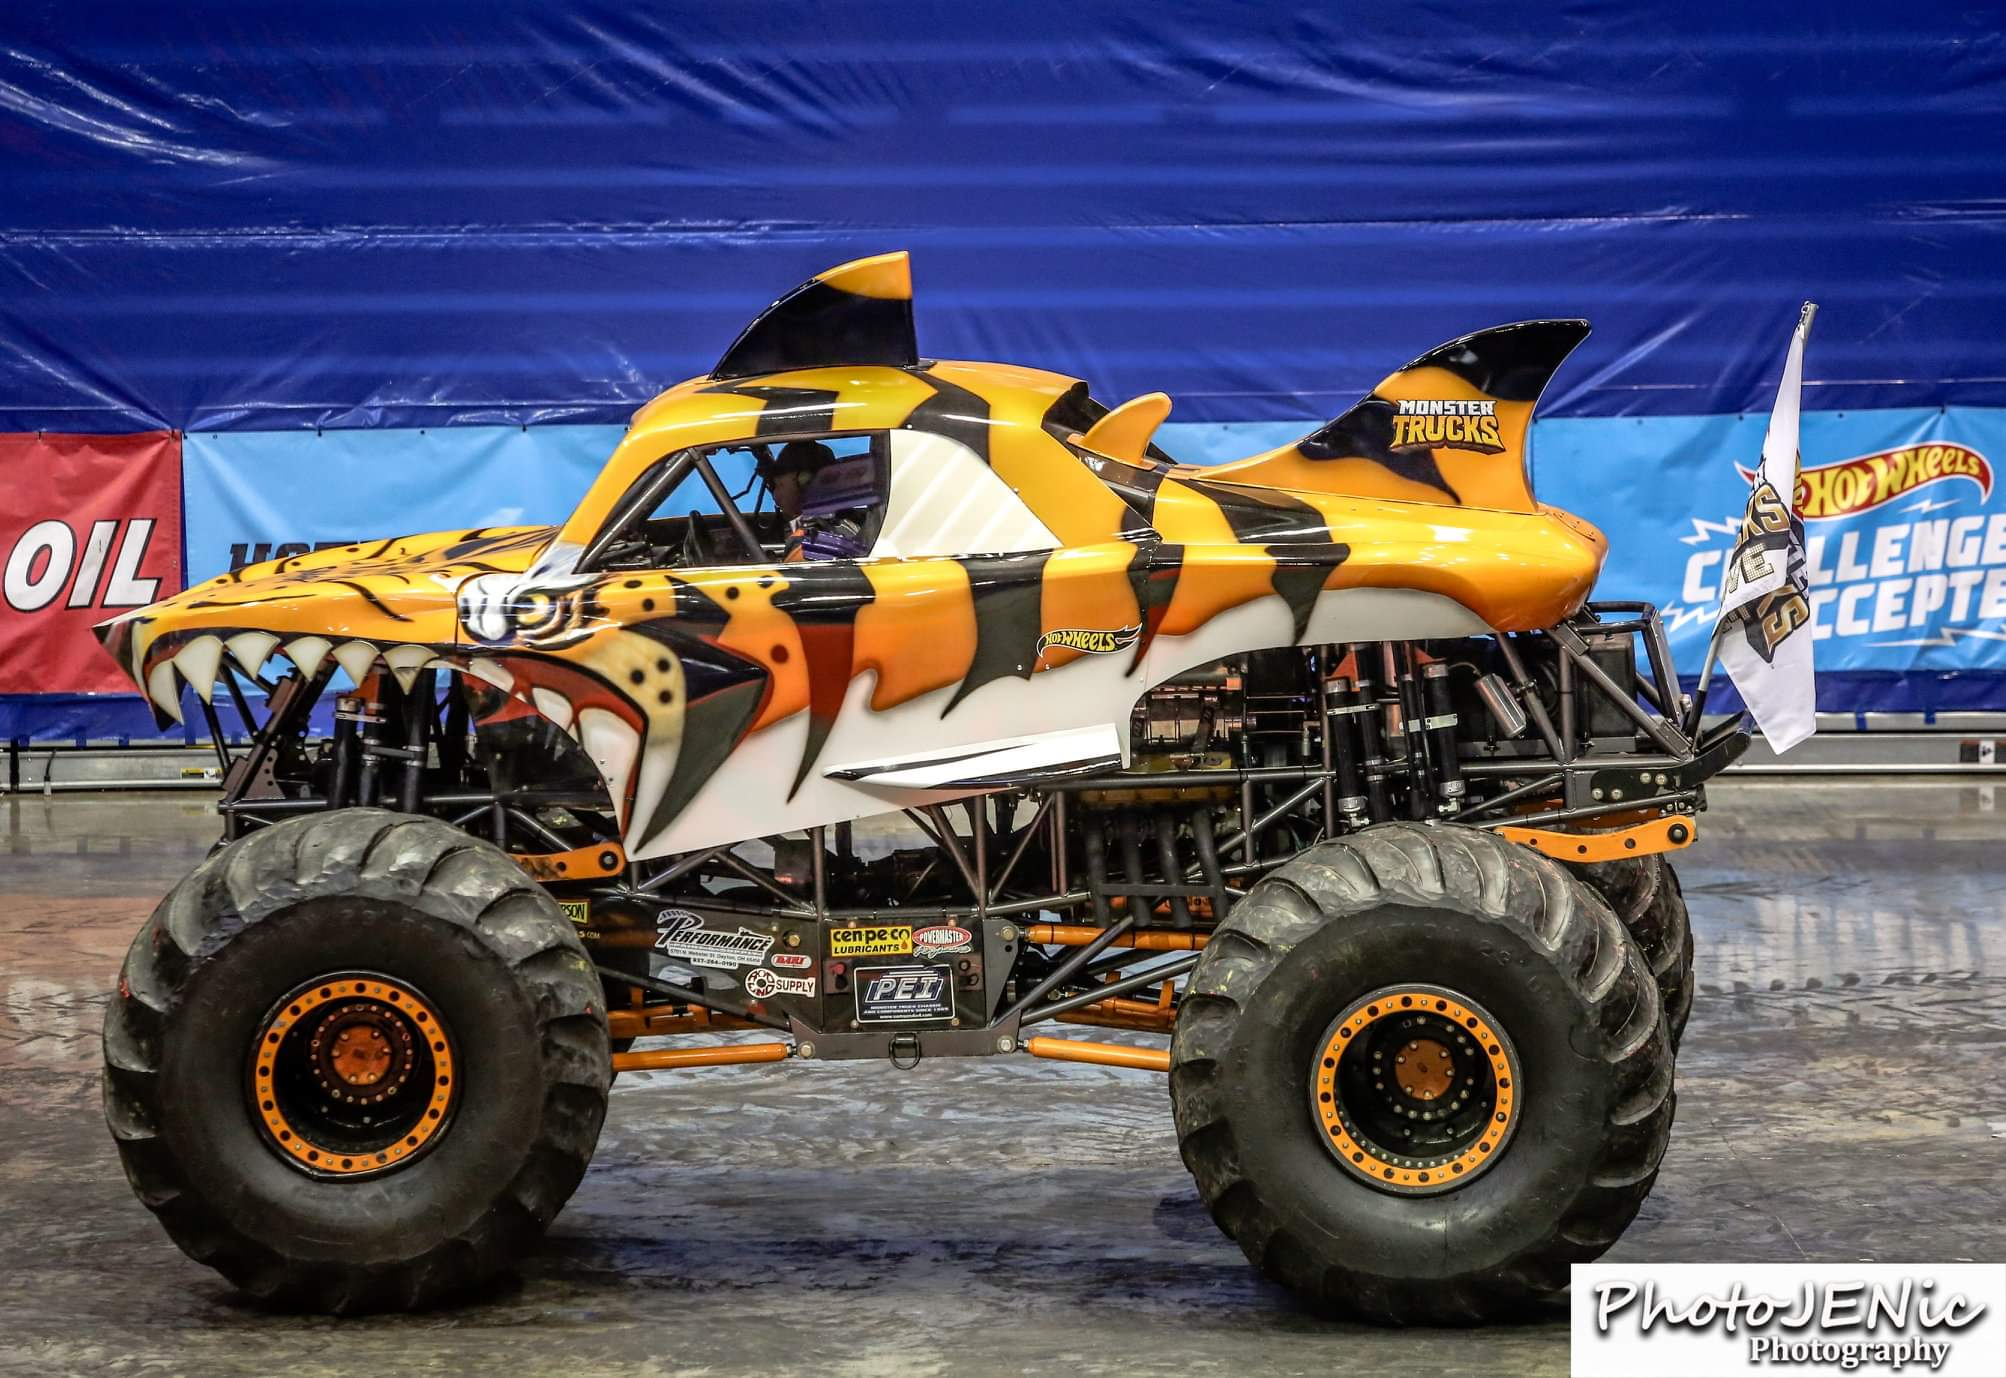 Tiger Shark Monster Trucks Wiki Fandom